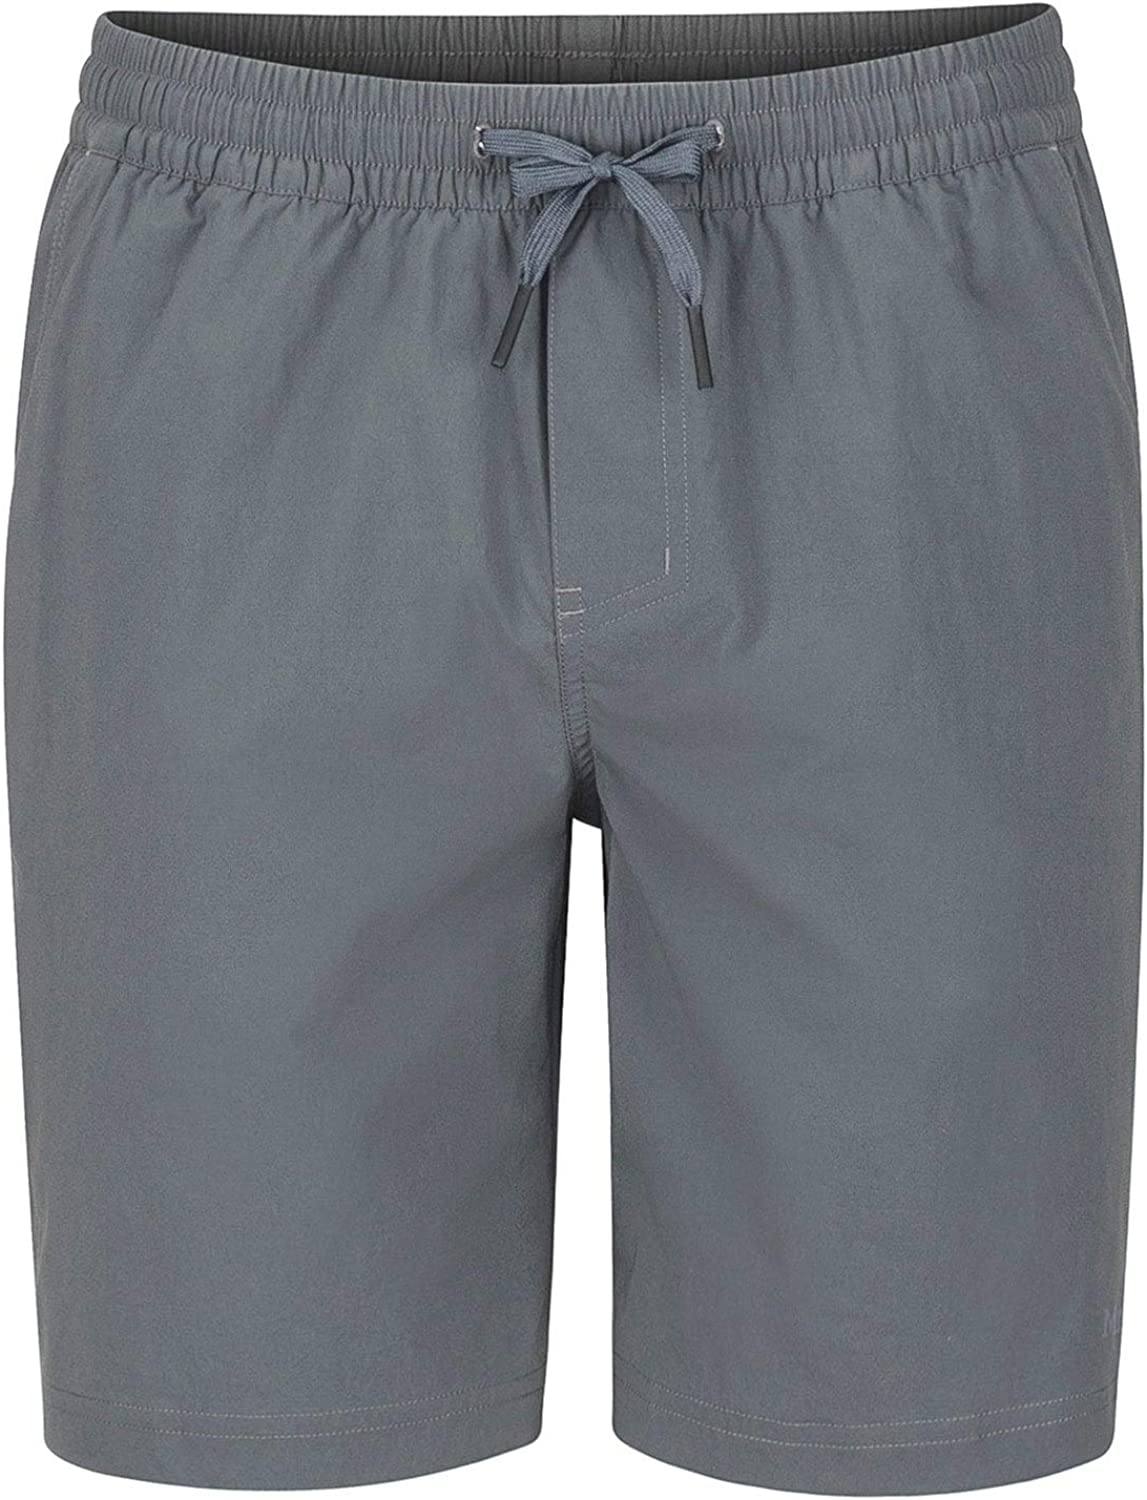 MARMOT Allomare Ranking TOP6 Clearance SALE! Limited time! Shorts